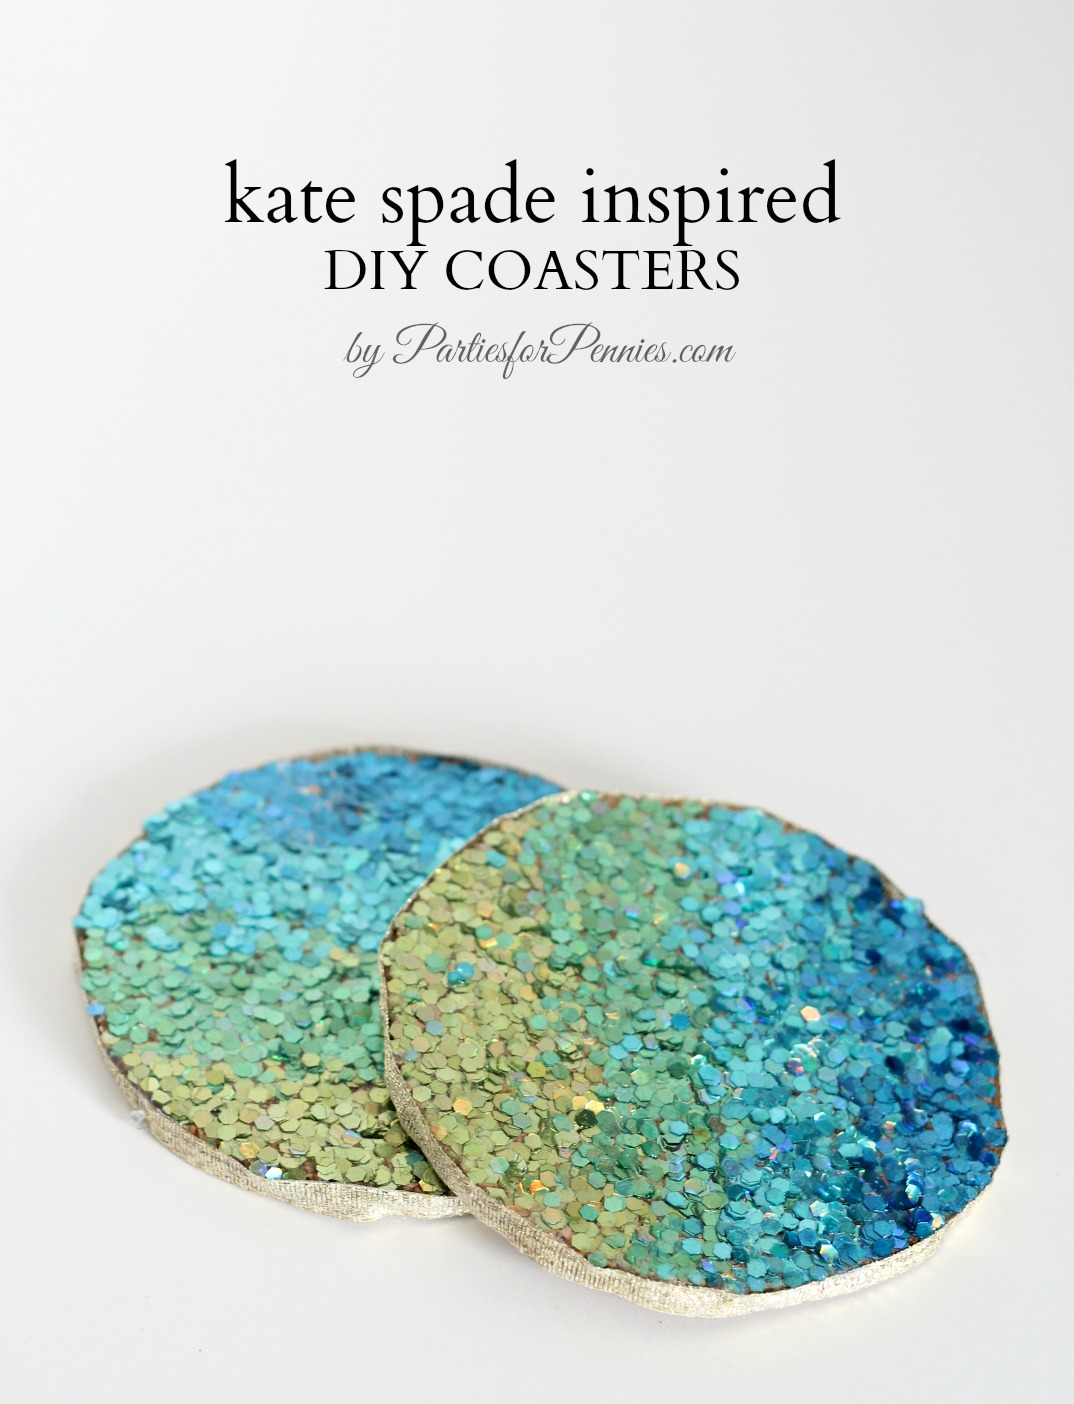 Kate Spade Inspired DIY Coasters by PartiesforPennies.com